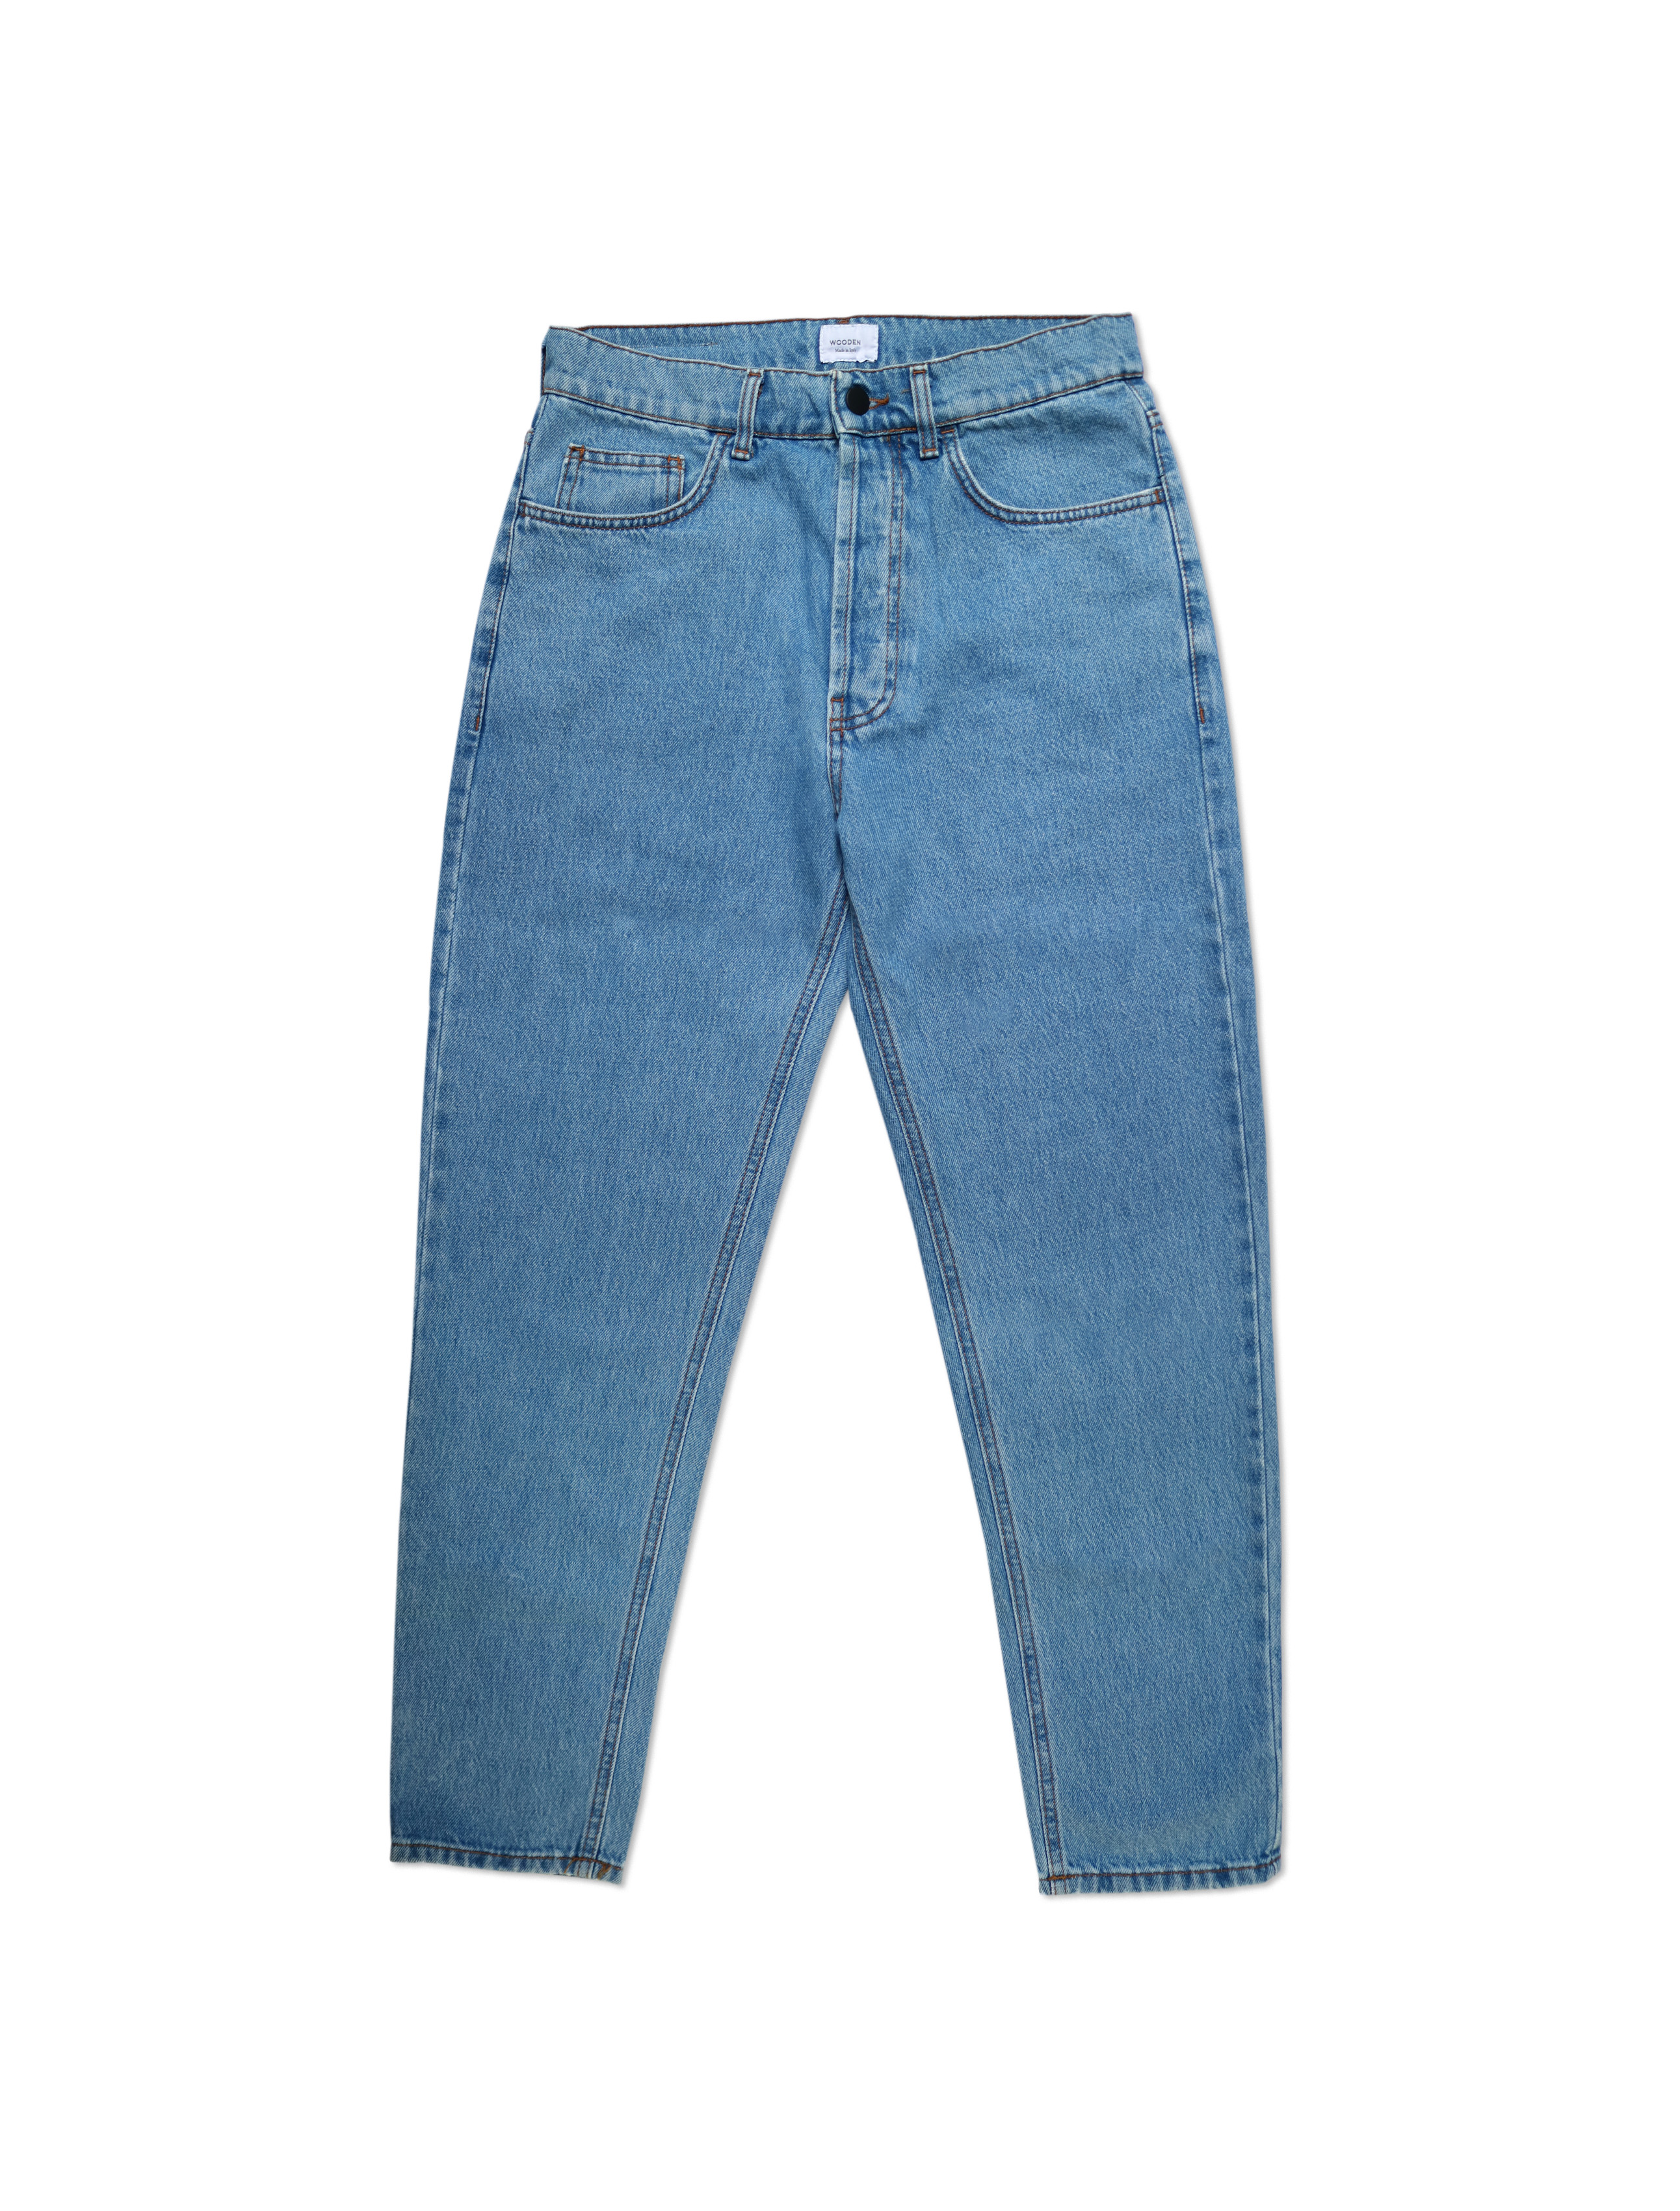 Jeans Original Real Super Stone   Wooden Store